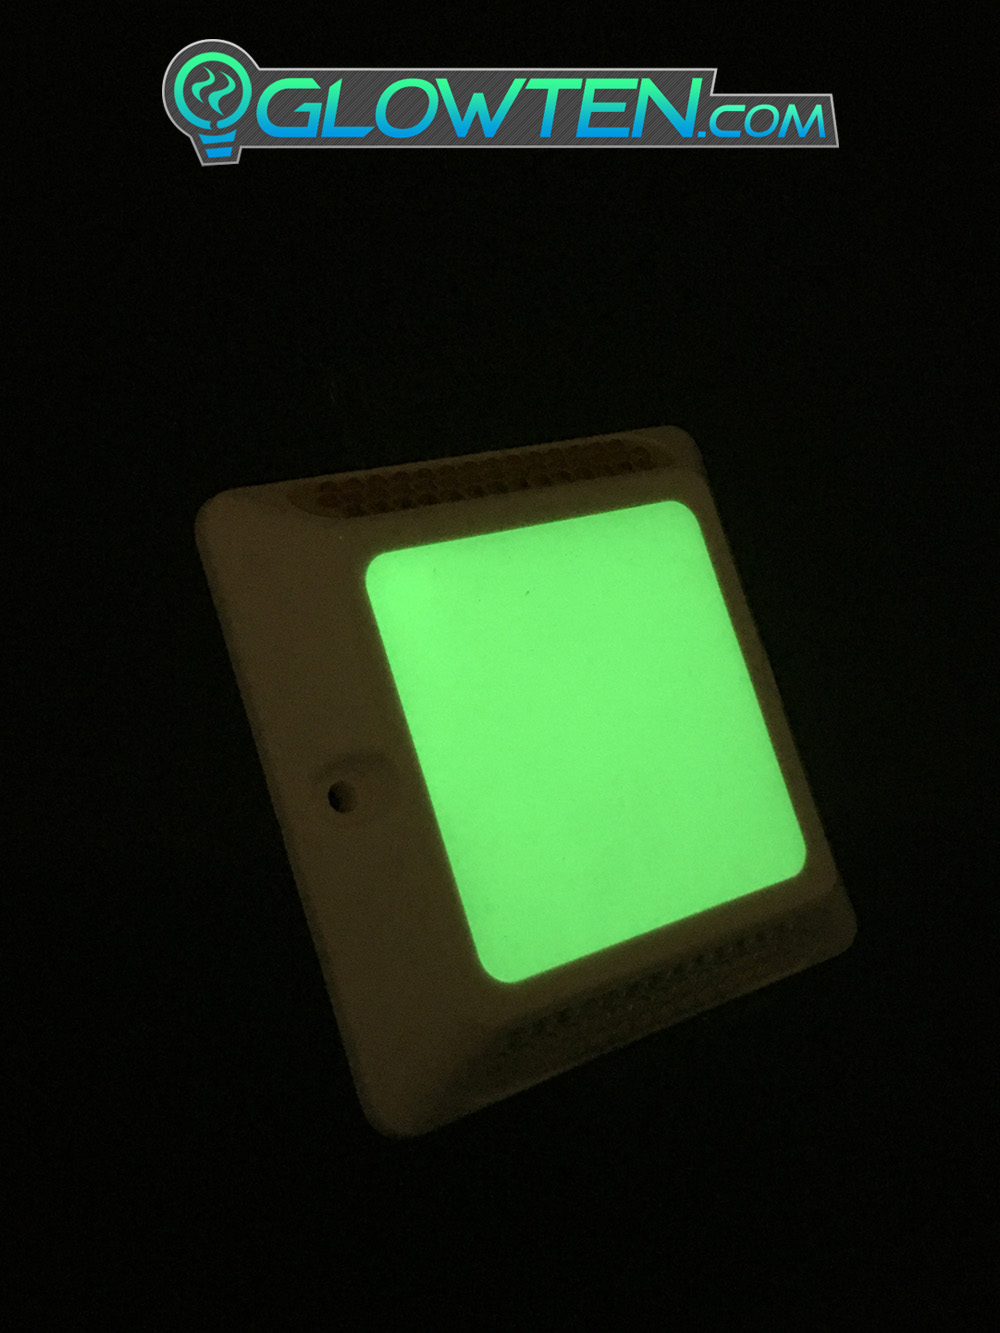 GLOWTEN.com - Glow in the Dark Shiny GREEN SQUARE BLOCK Riser Luminous Reflective Road Traffic Pavement Marker Botts' dots, cat's eyes Road Sign Reflector ABS Body Material See Brighter And Better At Night picture photo cap preview pic image search 5